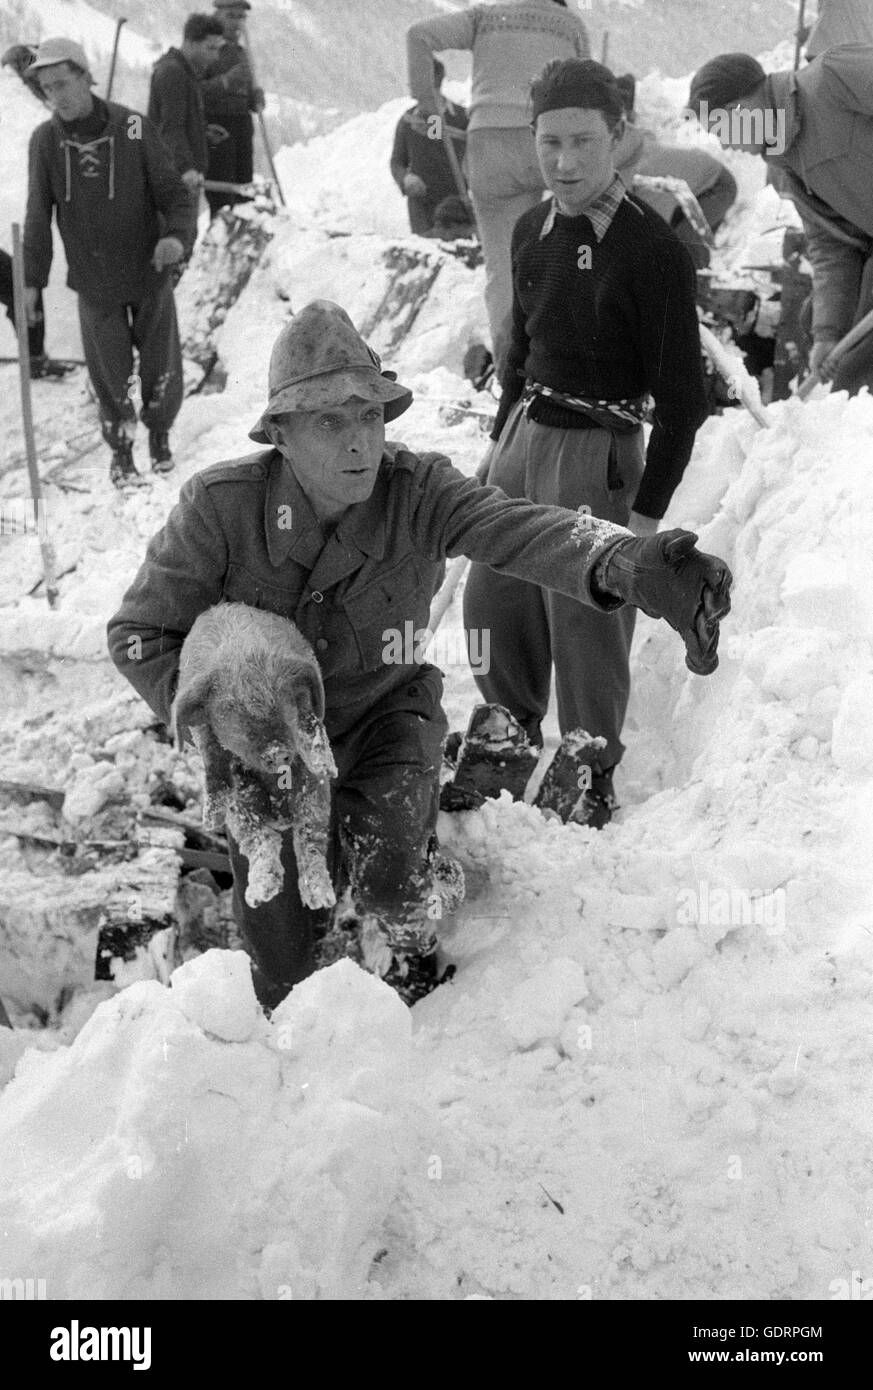 After an avalanche rescuers dig their way through the snow to a building, 1956 - Stock Image